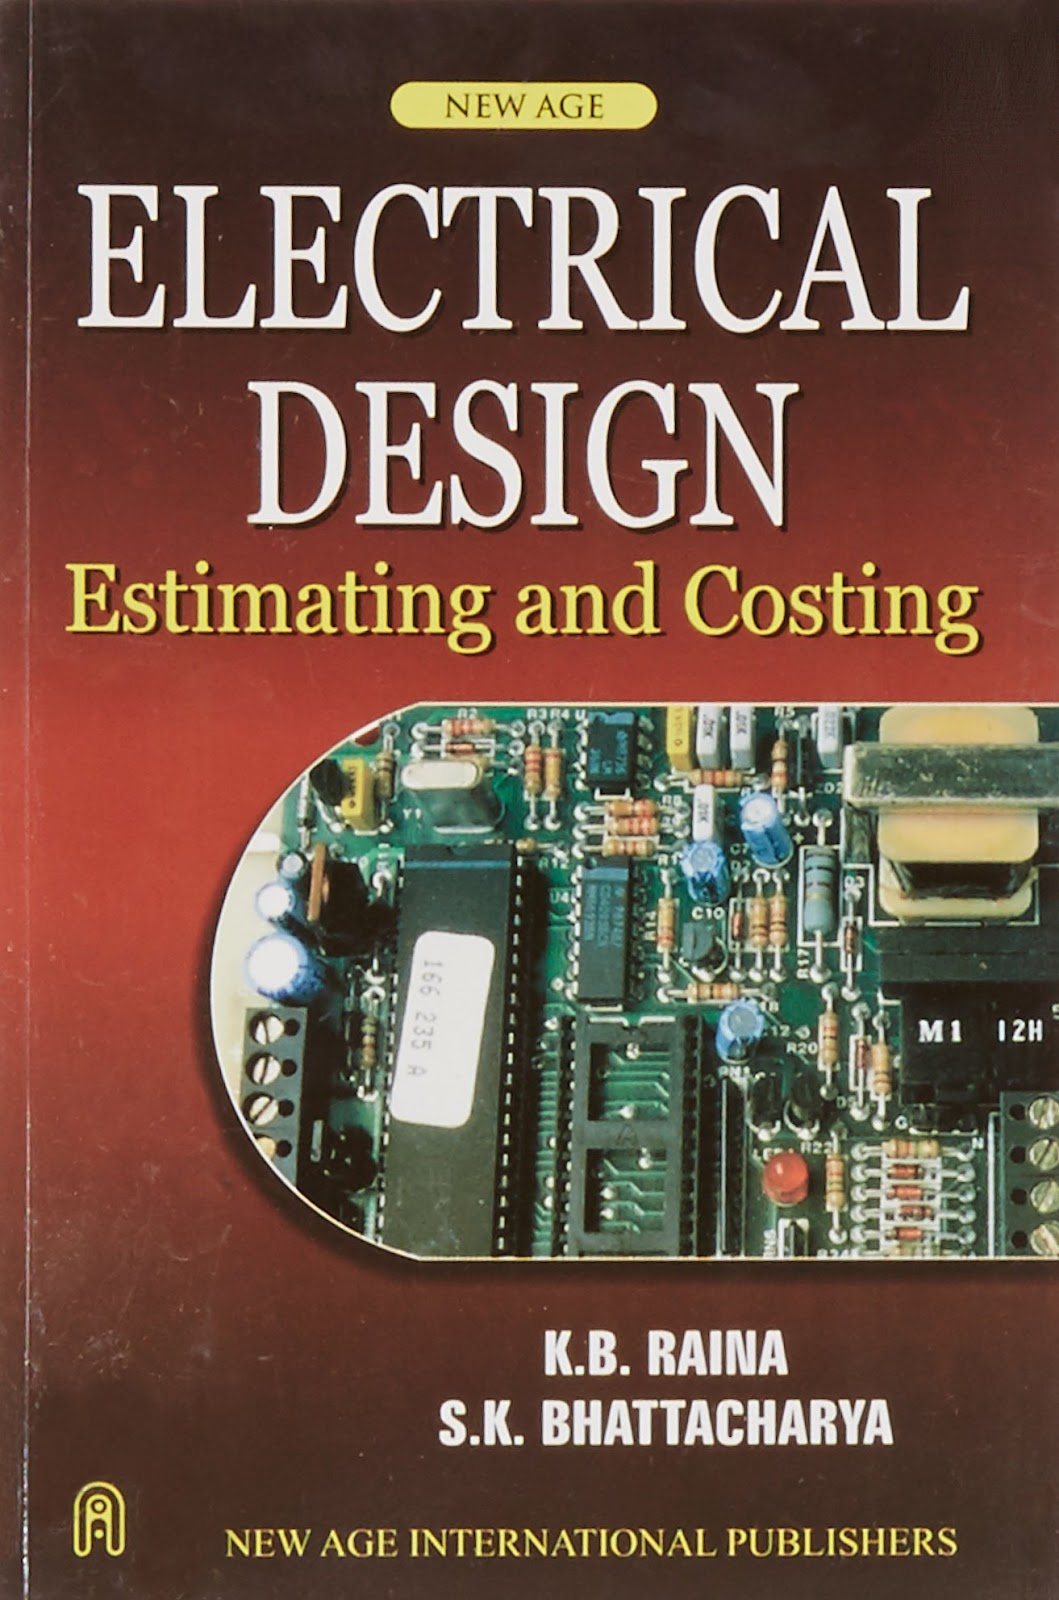 Electrical Wiring For Dummies Pdf Free Download